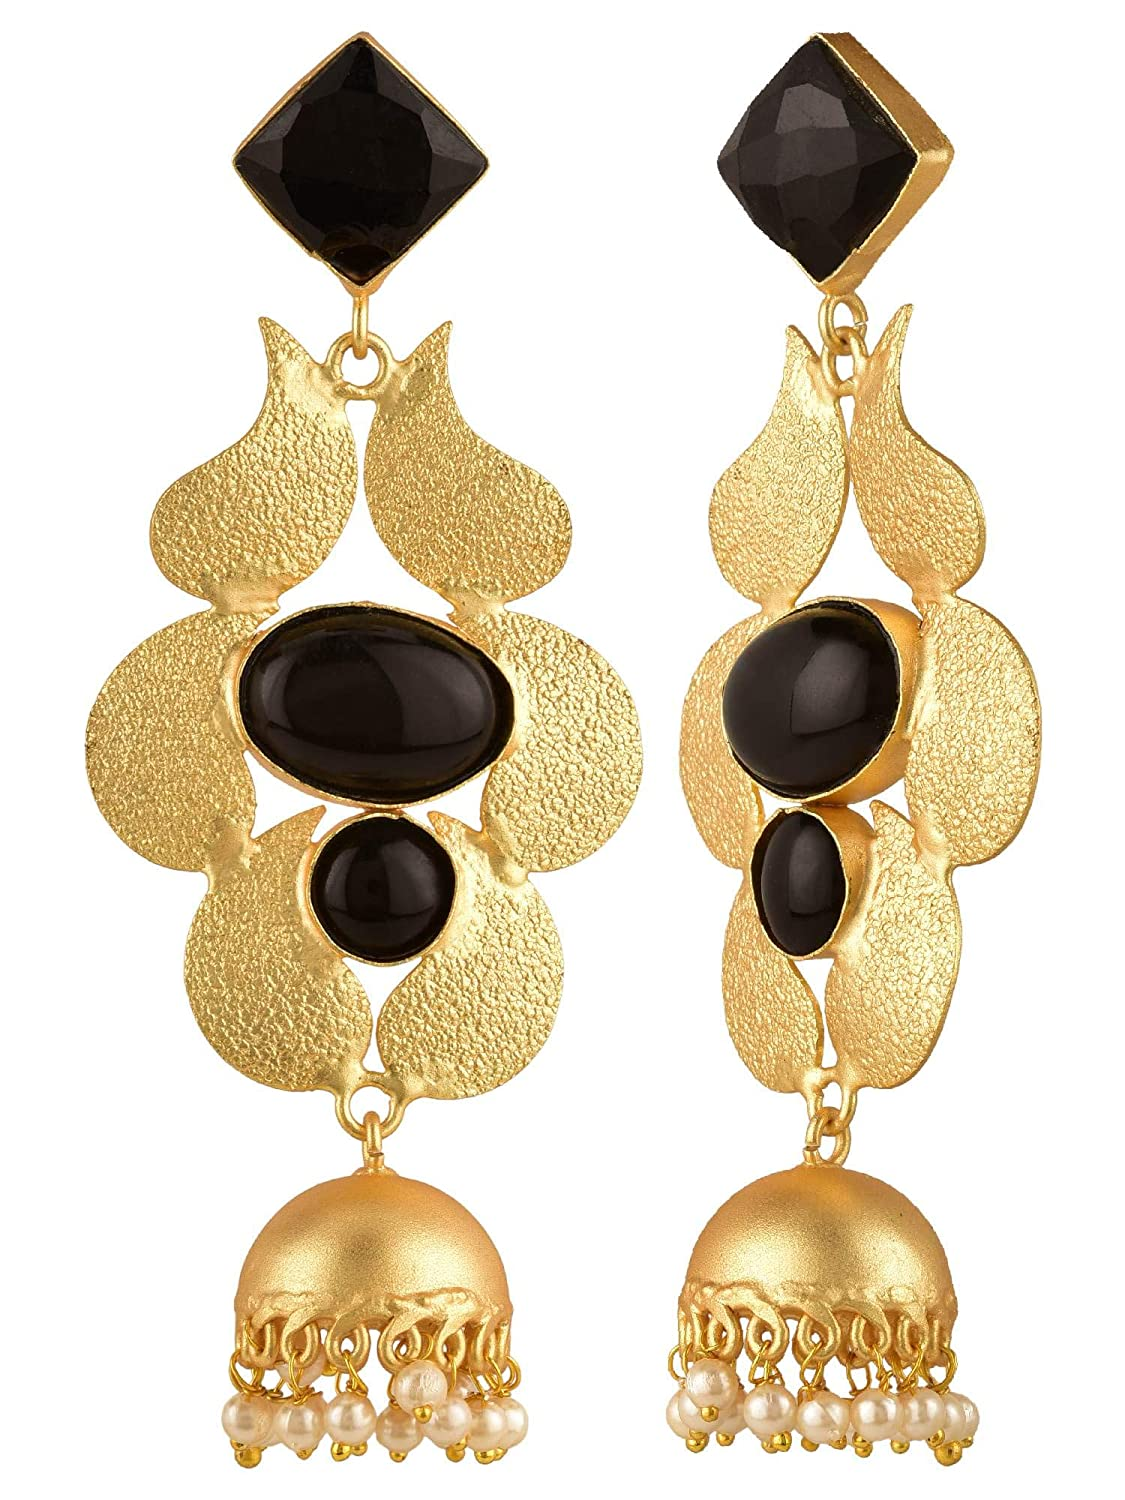 Efulgenz Indian Bollywood 14K Gold Plated Black Crystal Pearl Floral Style Jhumka Jhumki Big Earrings Jewelry Set